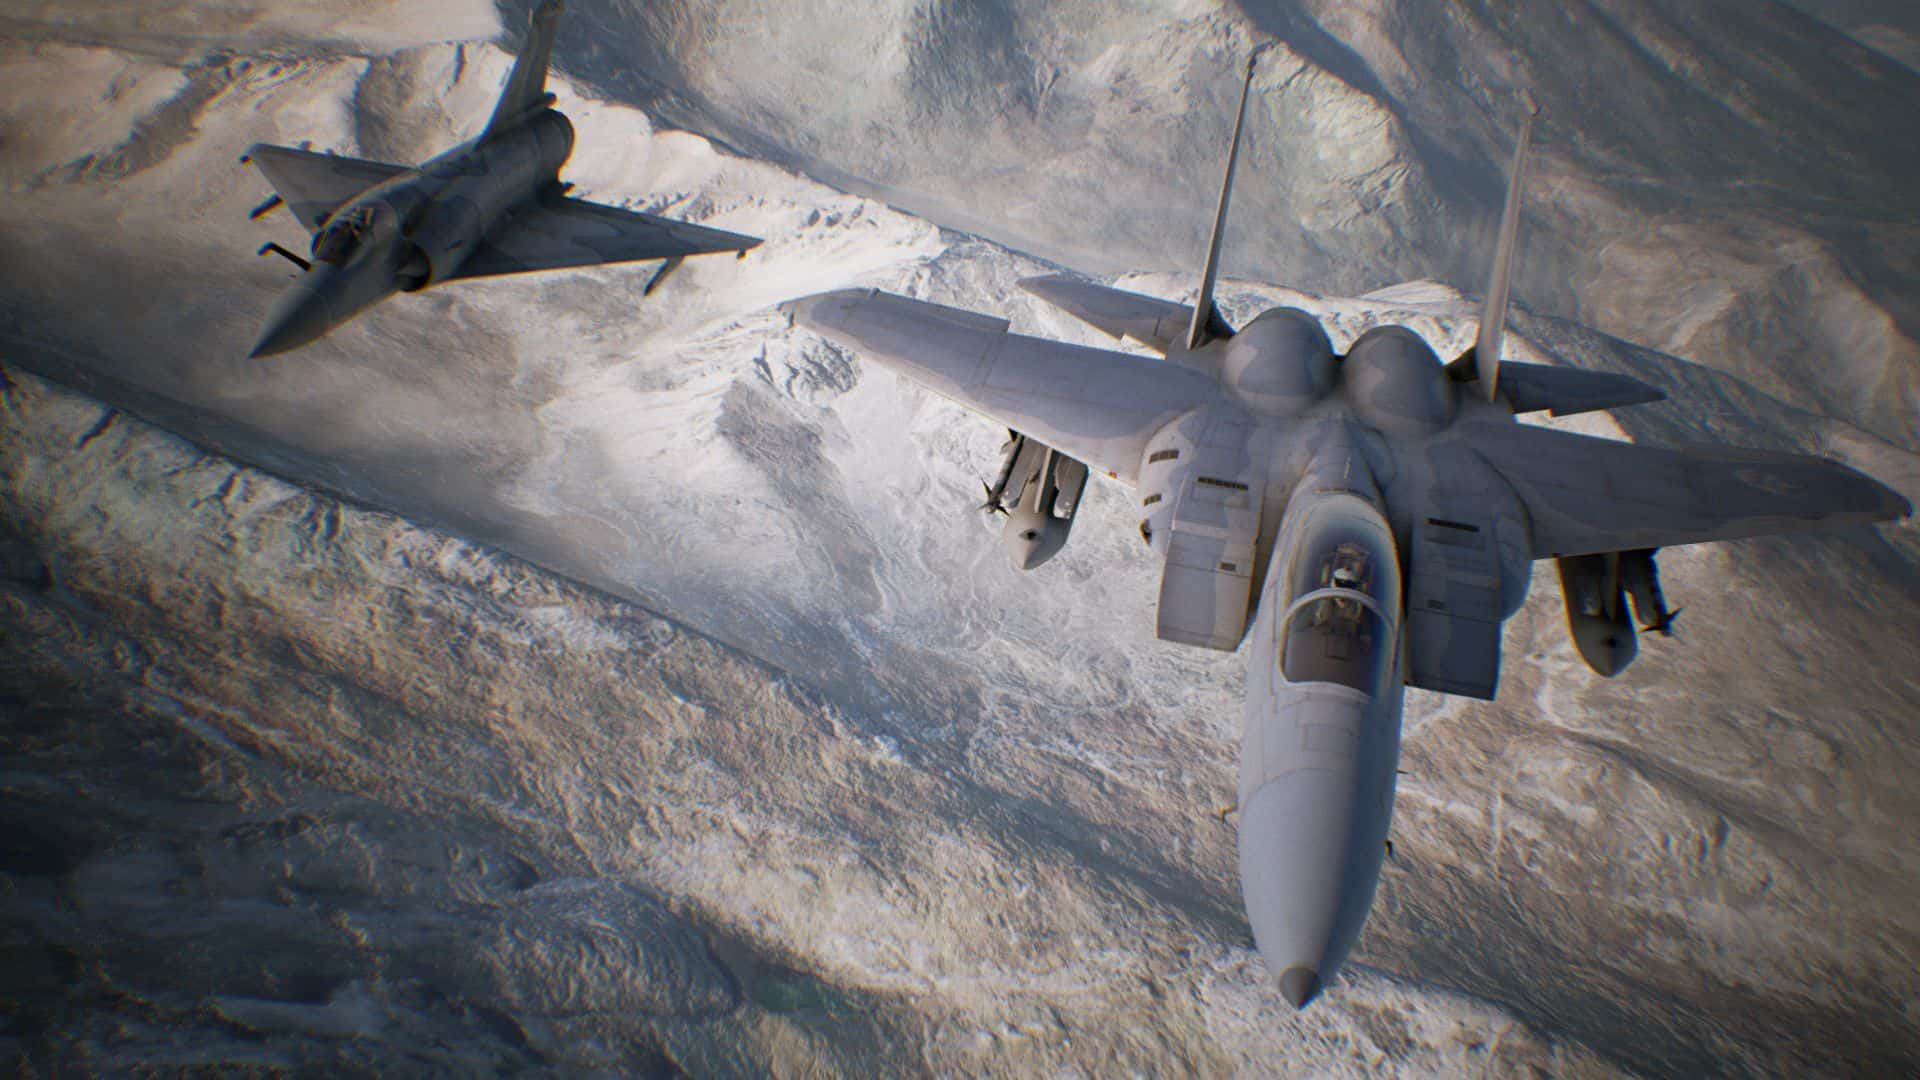 Having Problems With Ace Combat 7 Skies Unknown Not Loading Fix Guide